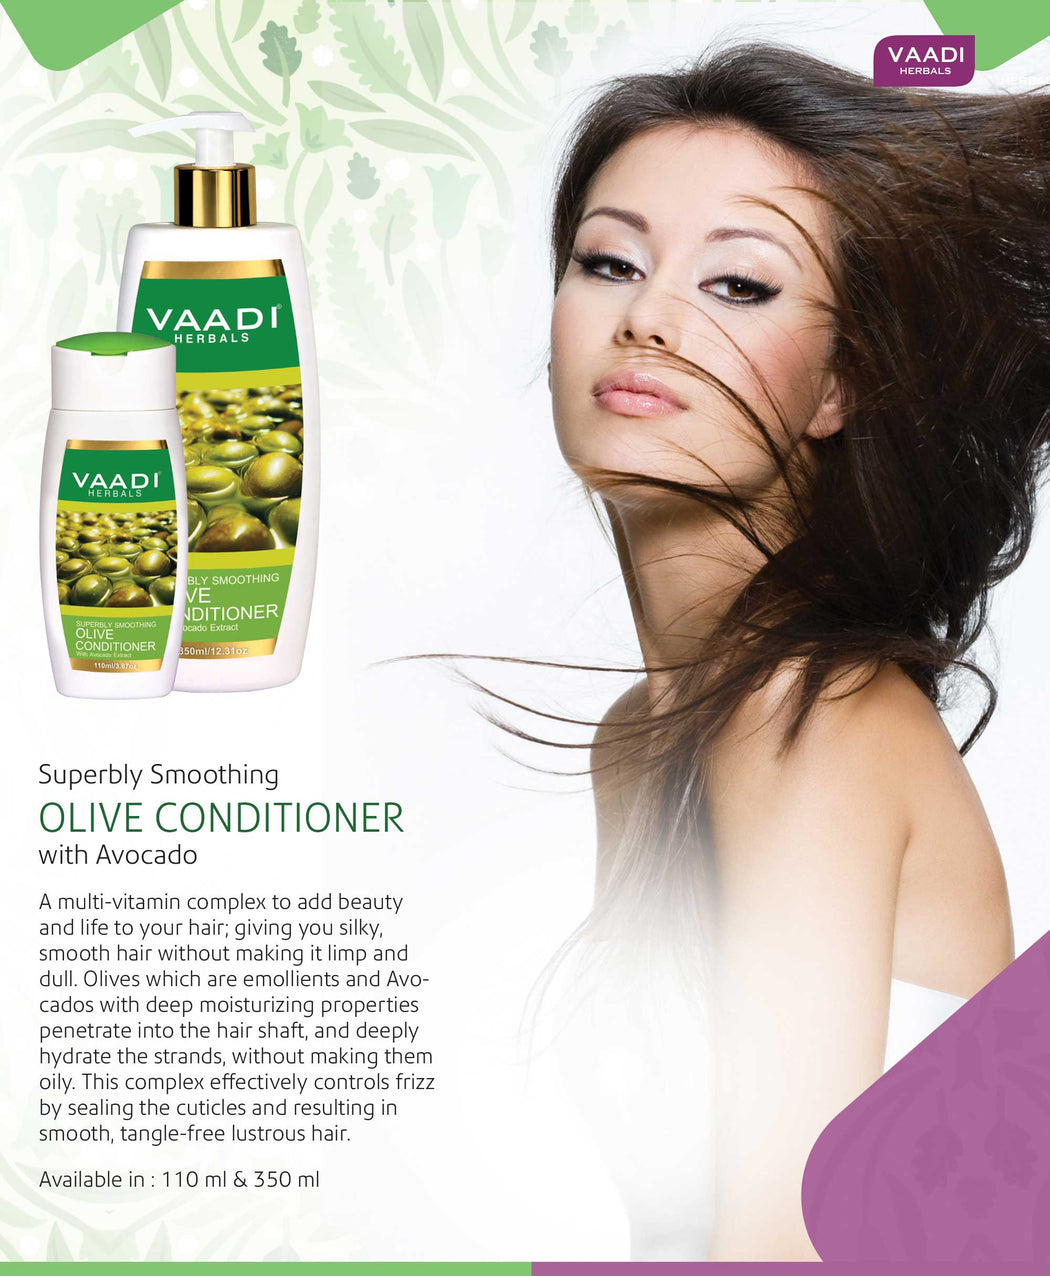 Multi Vitamin Organic Rich Olive Conditioner with Avocado Extract (110 ml/ 4 fl oz)